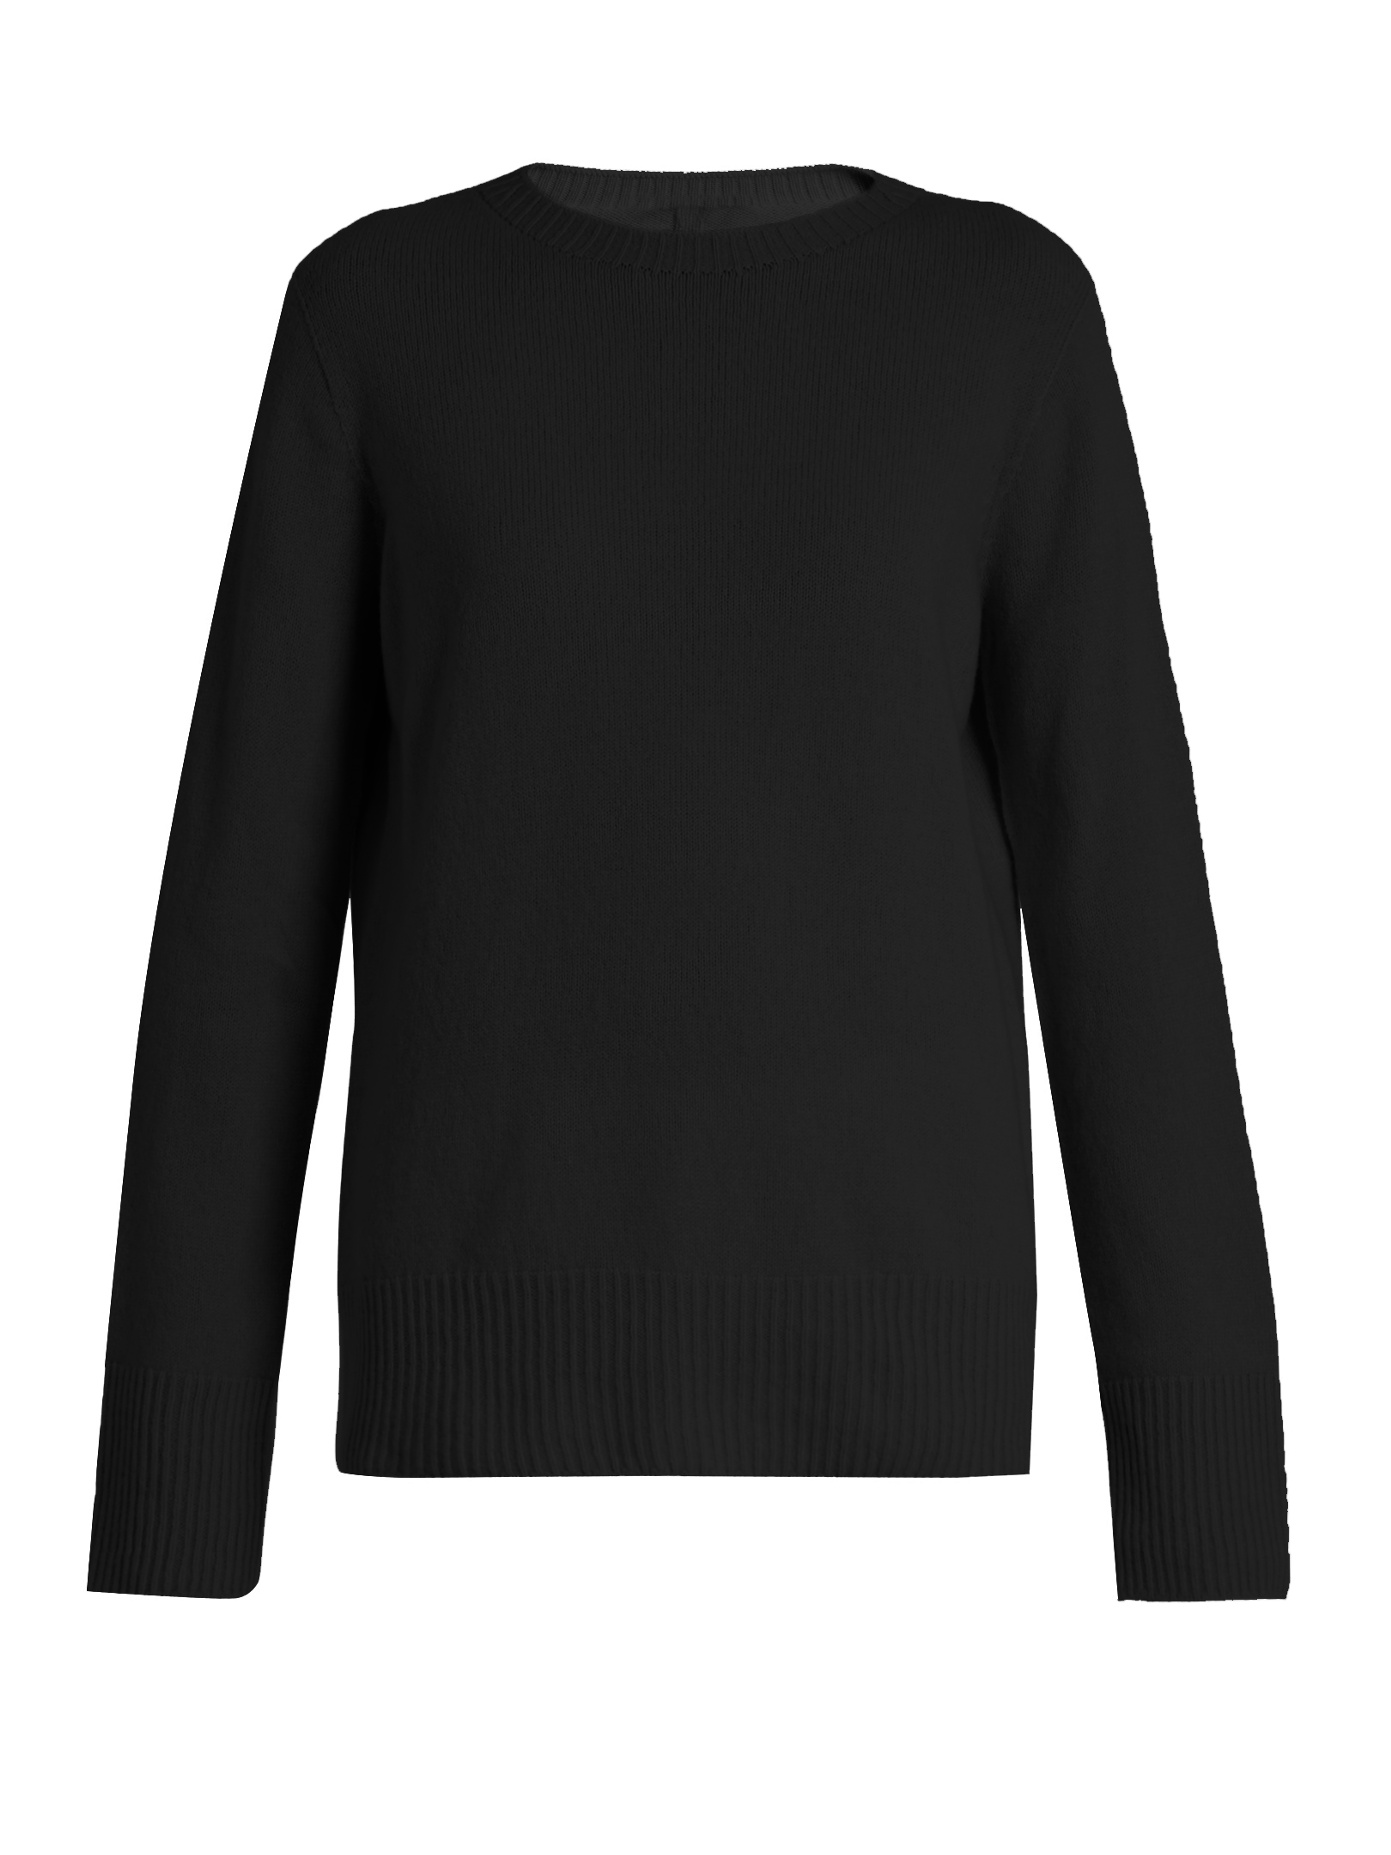 black or navy crewneck knit - The Row / for less